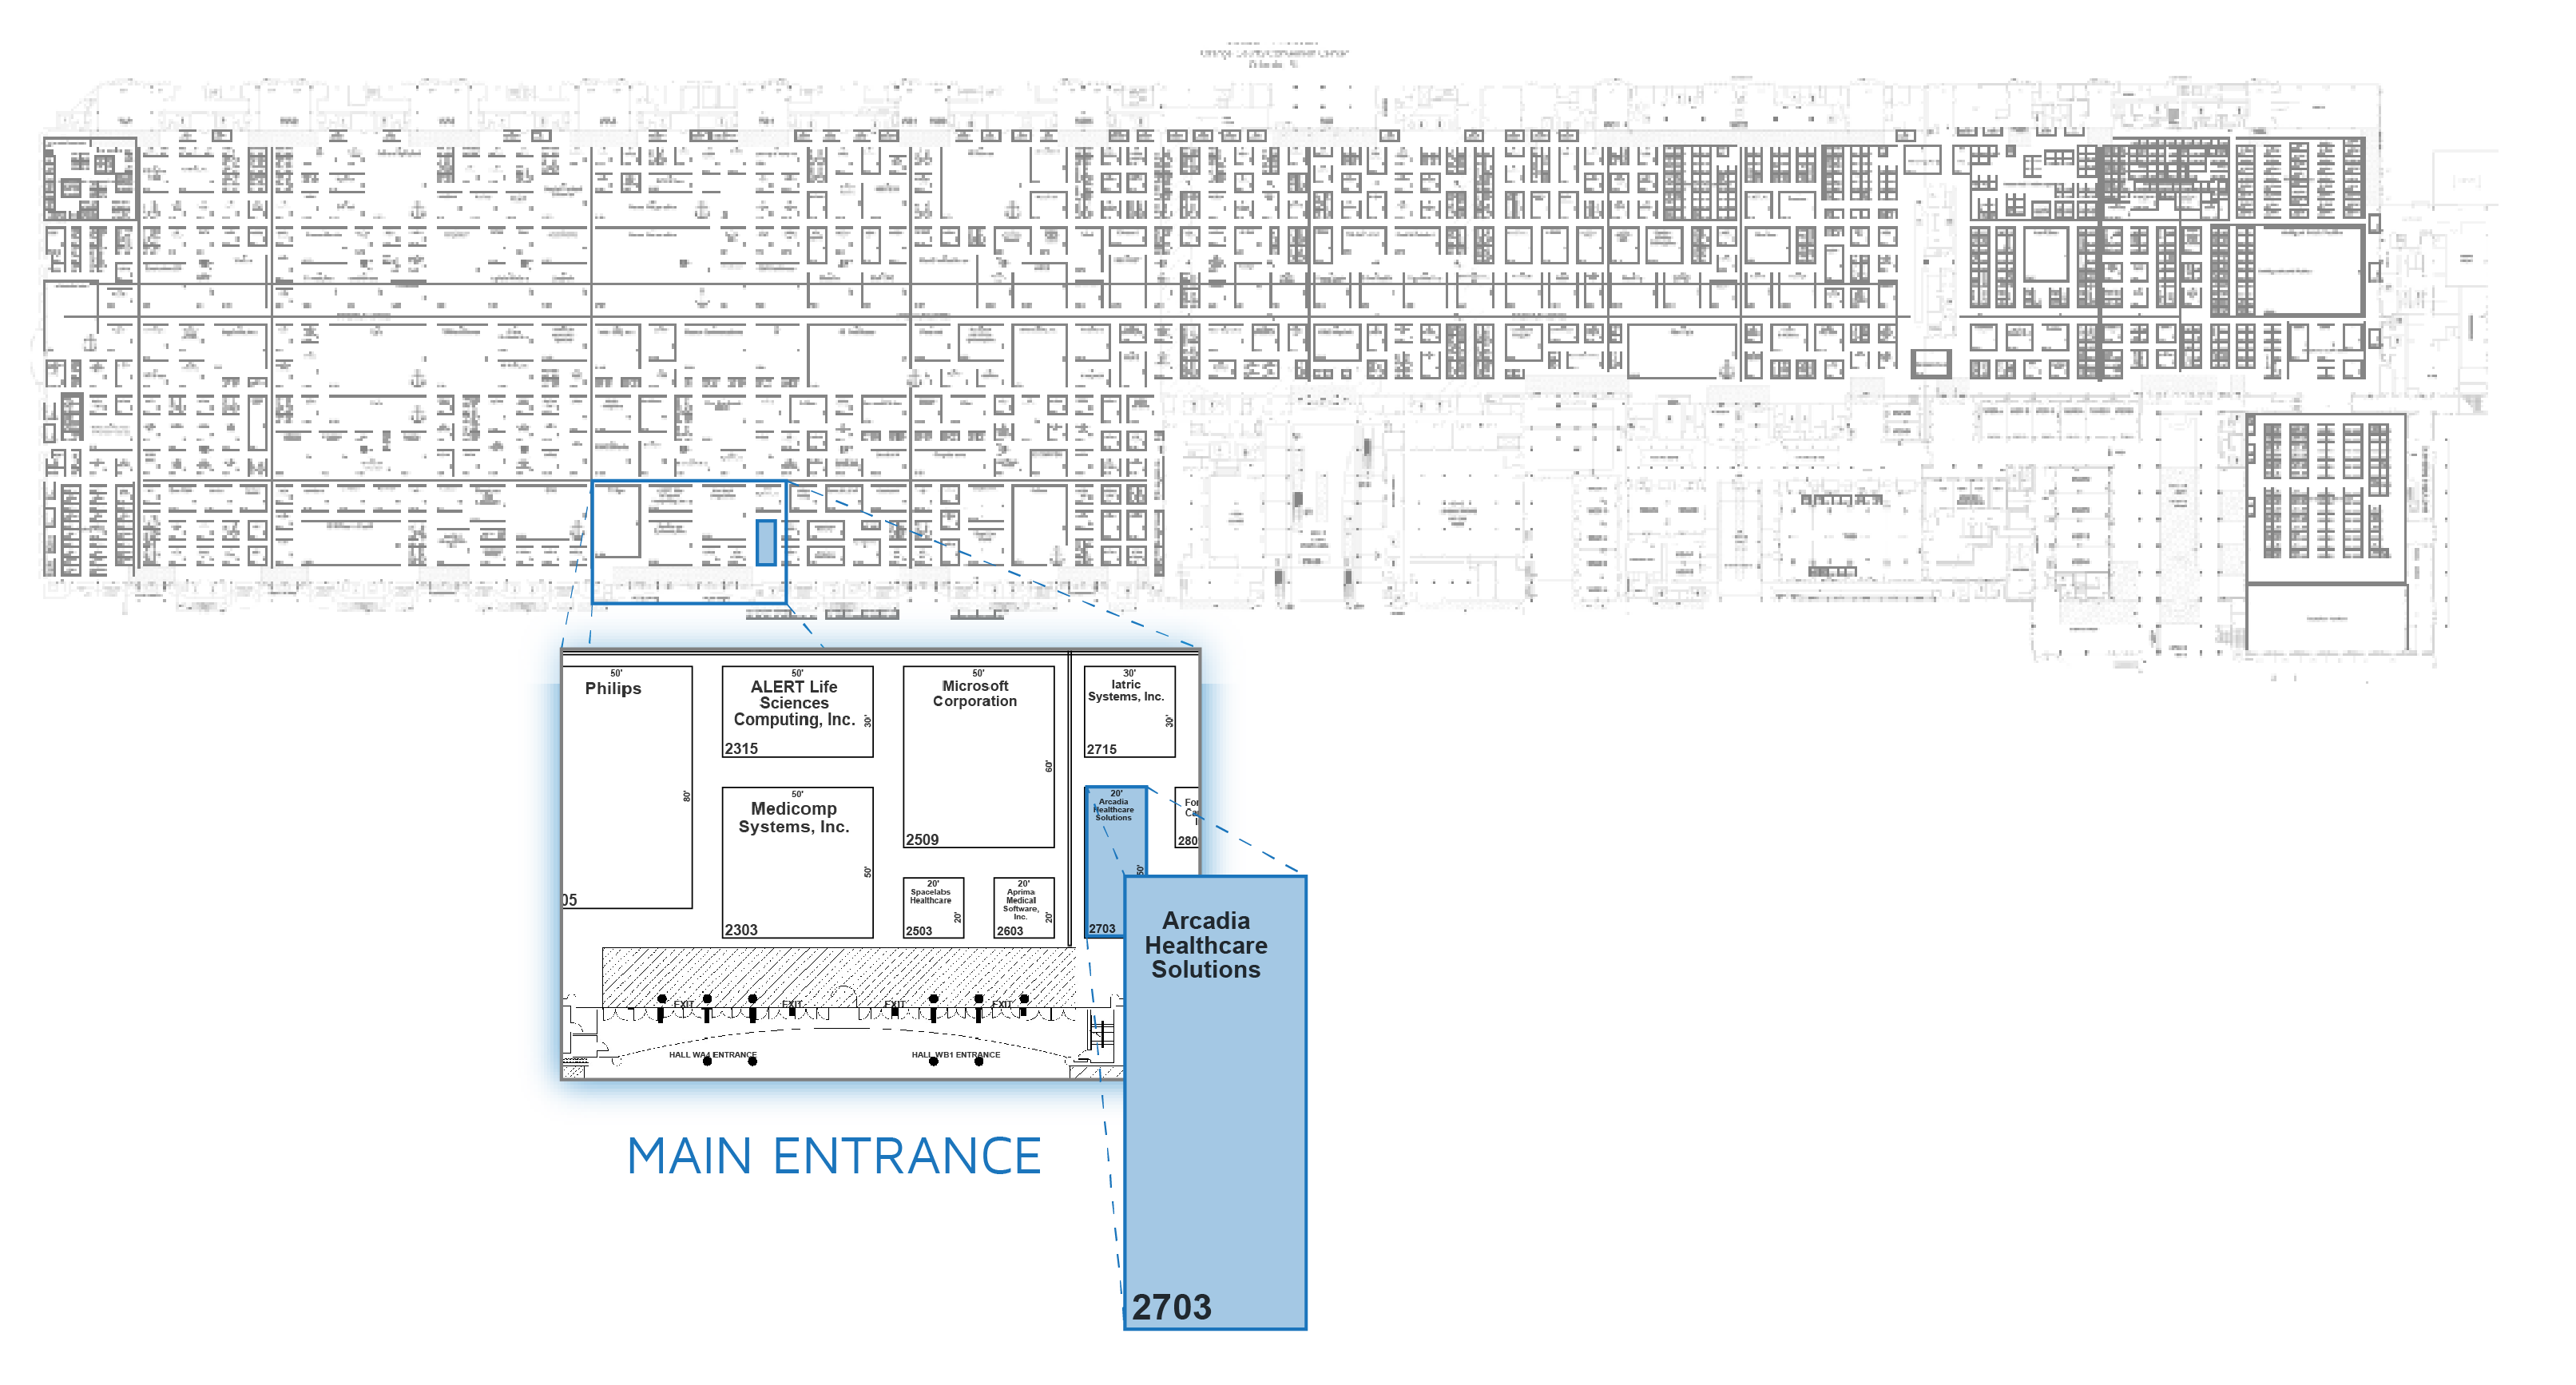 HIMSS Booth Map Arcadia 2703